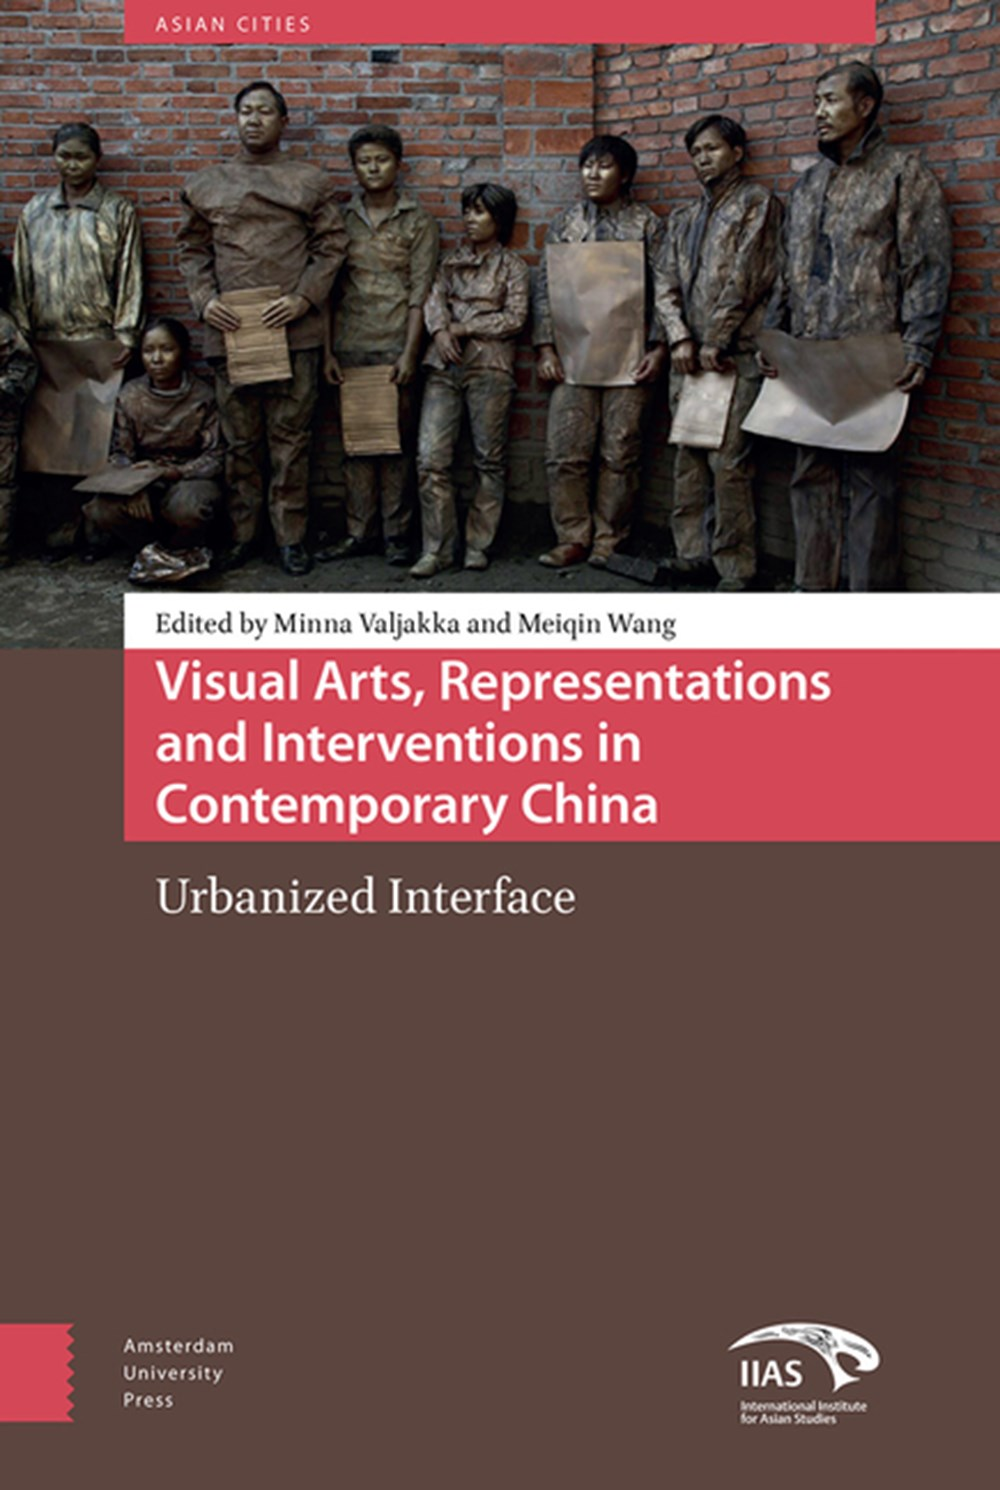 Visual Arts, Representations and Interventions in Contemporary China Urbanized Interface